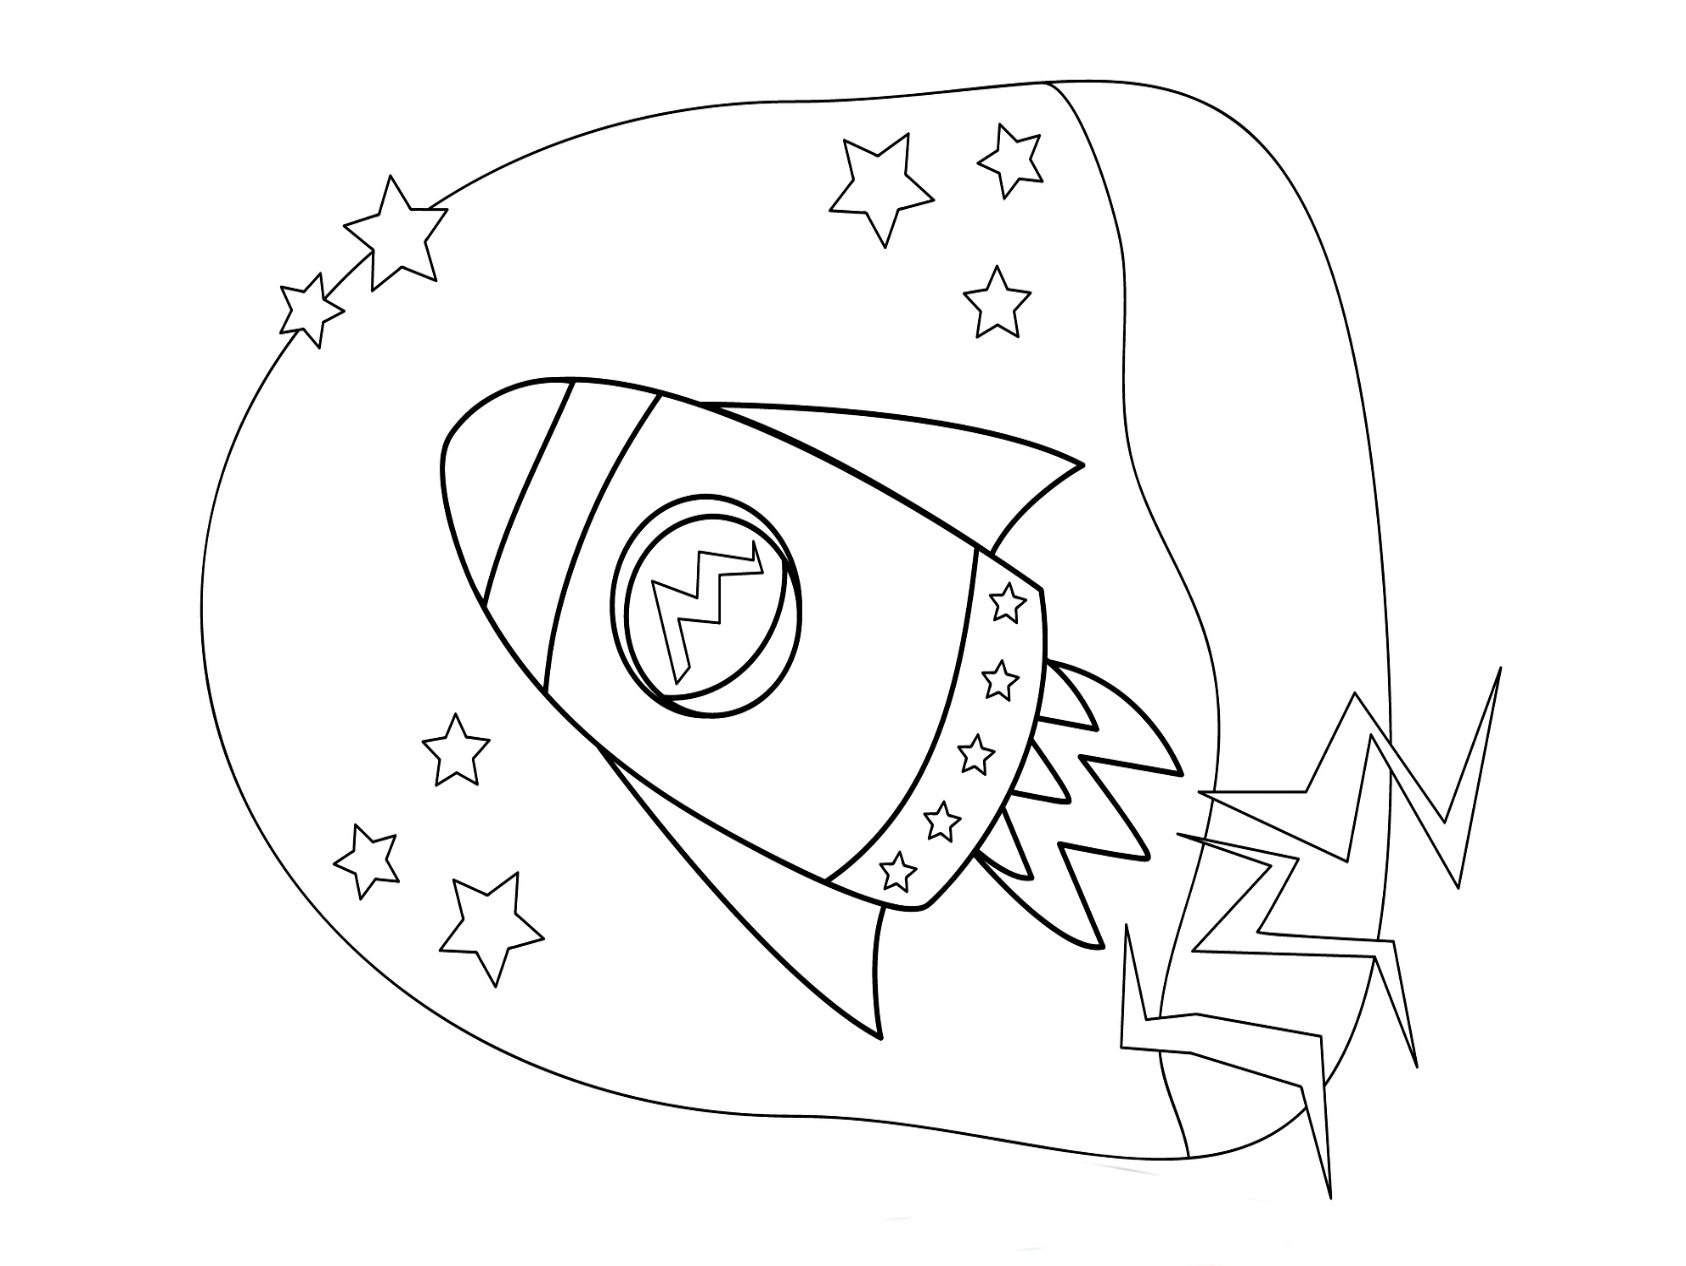 rocket ship coloring pages to print - Coloring Page Kindergarten